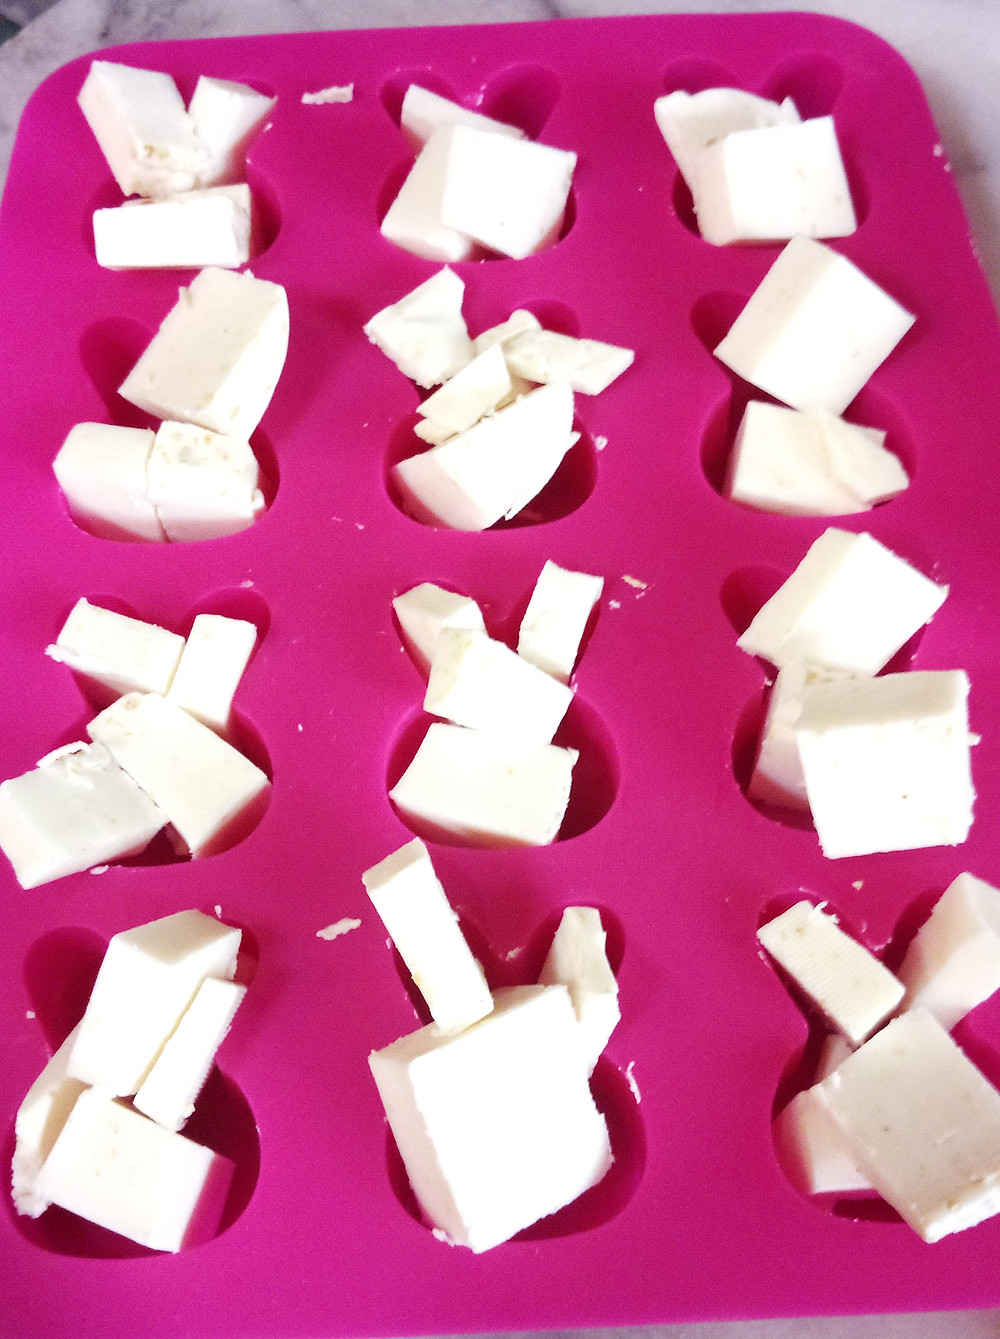 Place chopped soap into the mould to estimate quantity